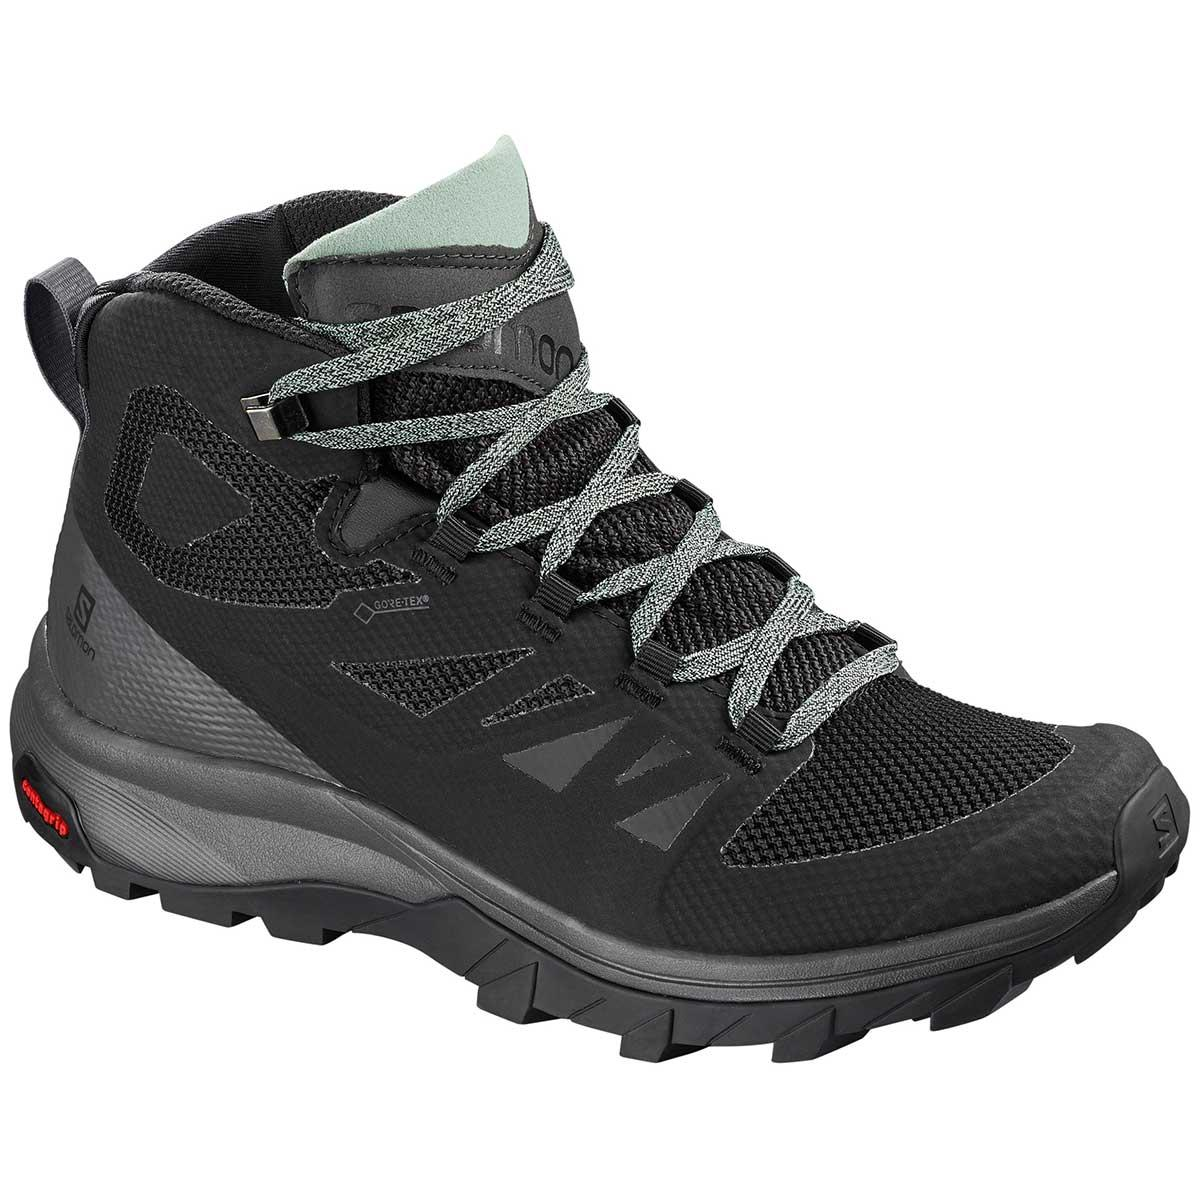 Salomon Outline Mid GTX W in Black and Magnet and Green